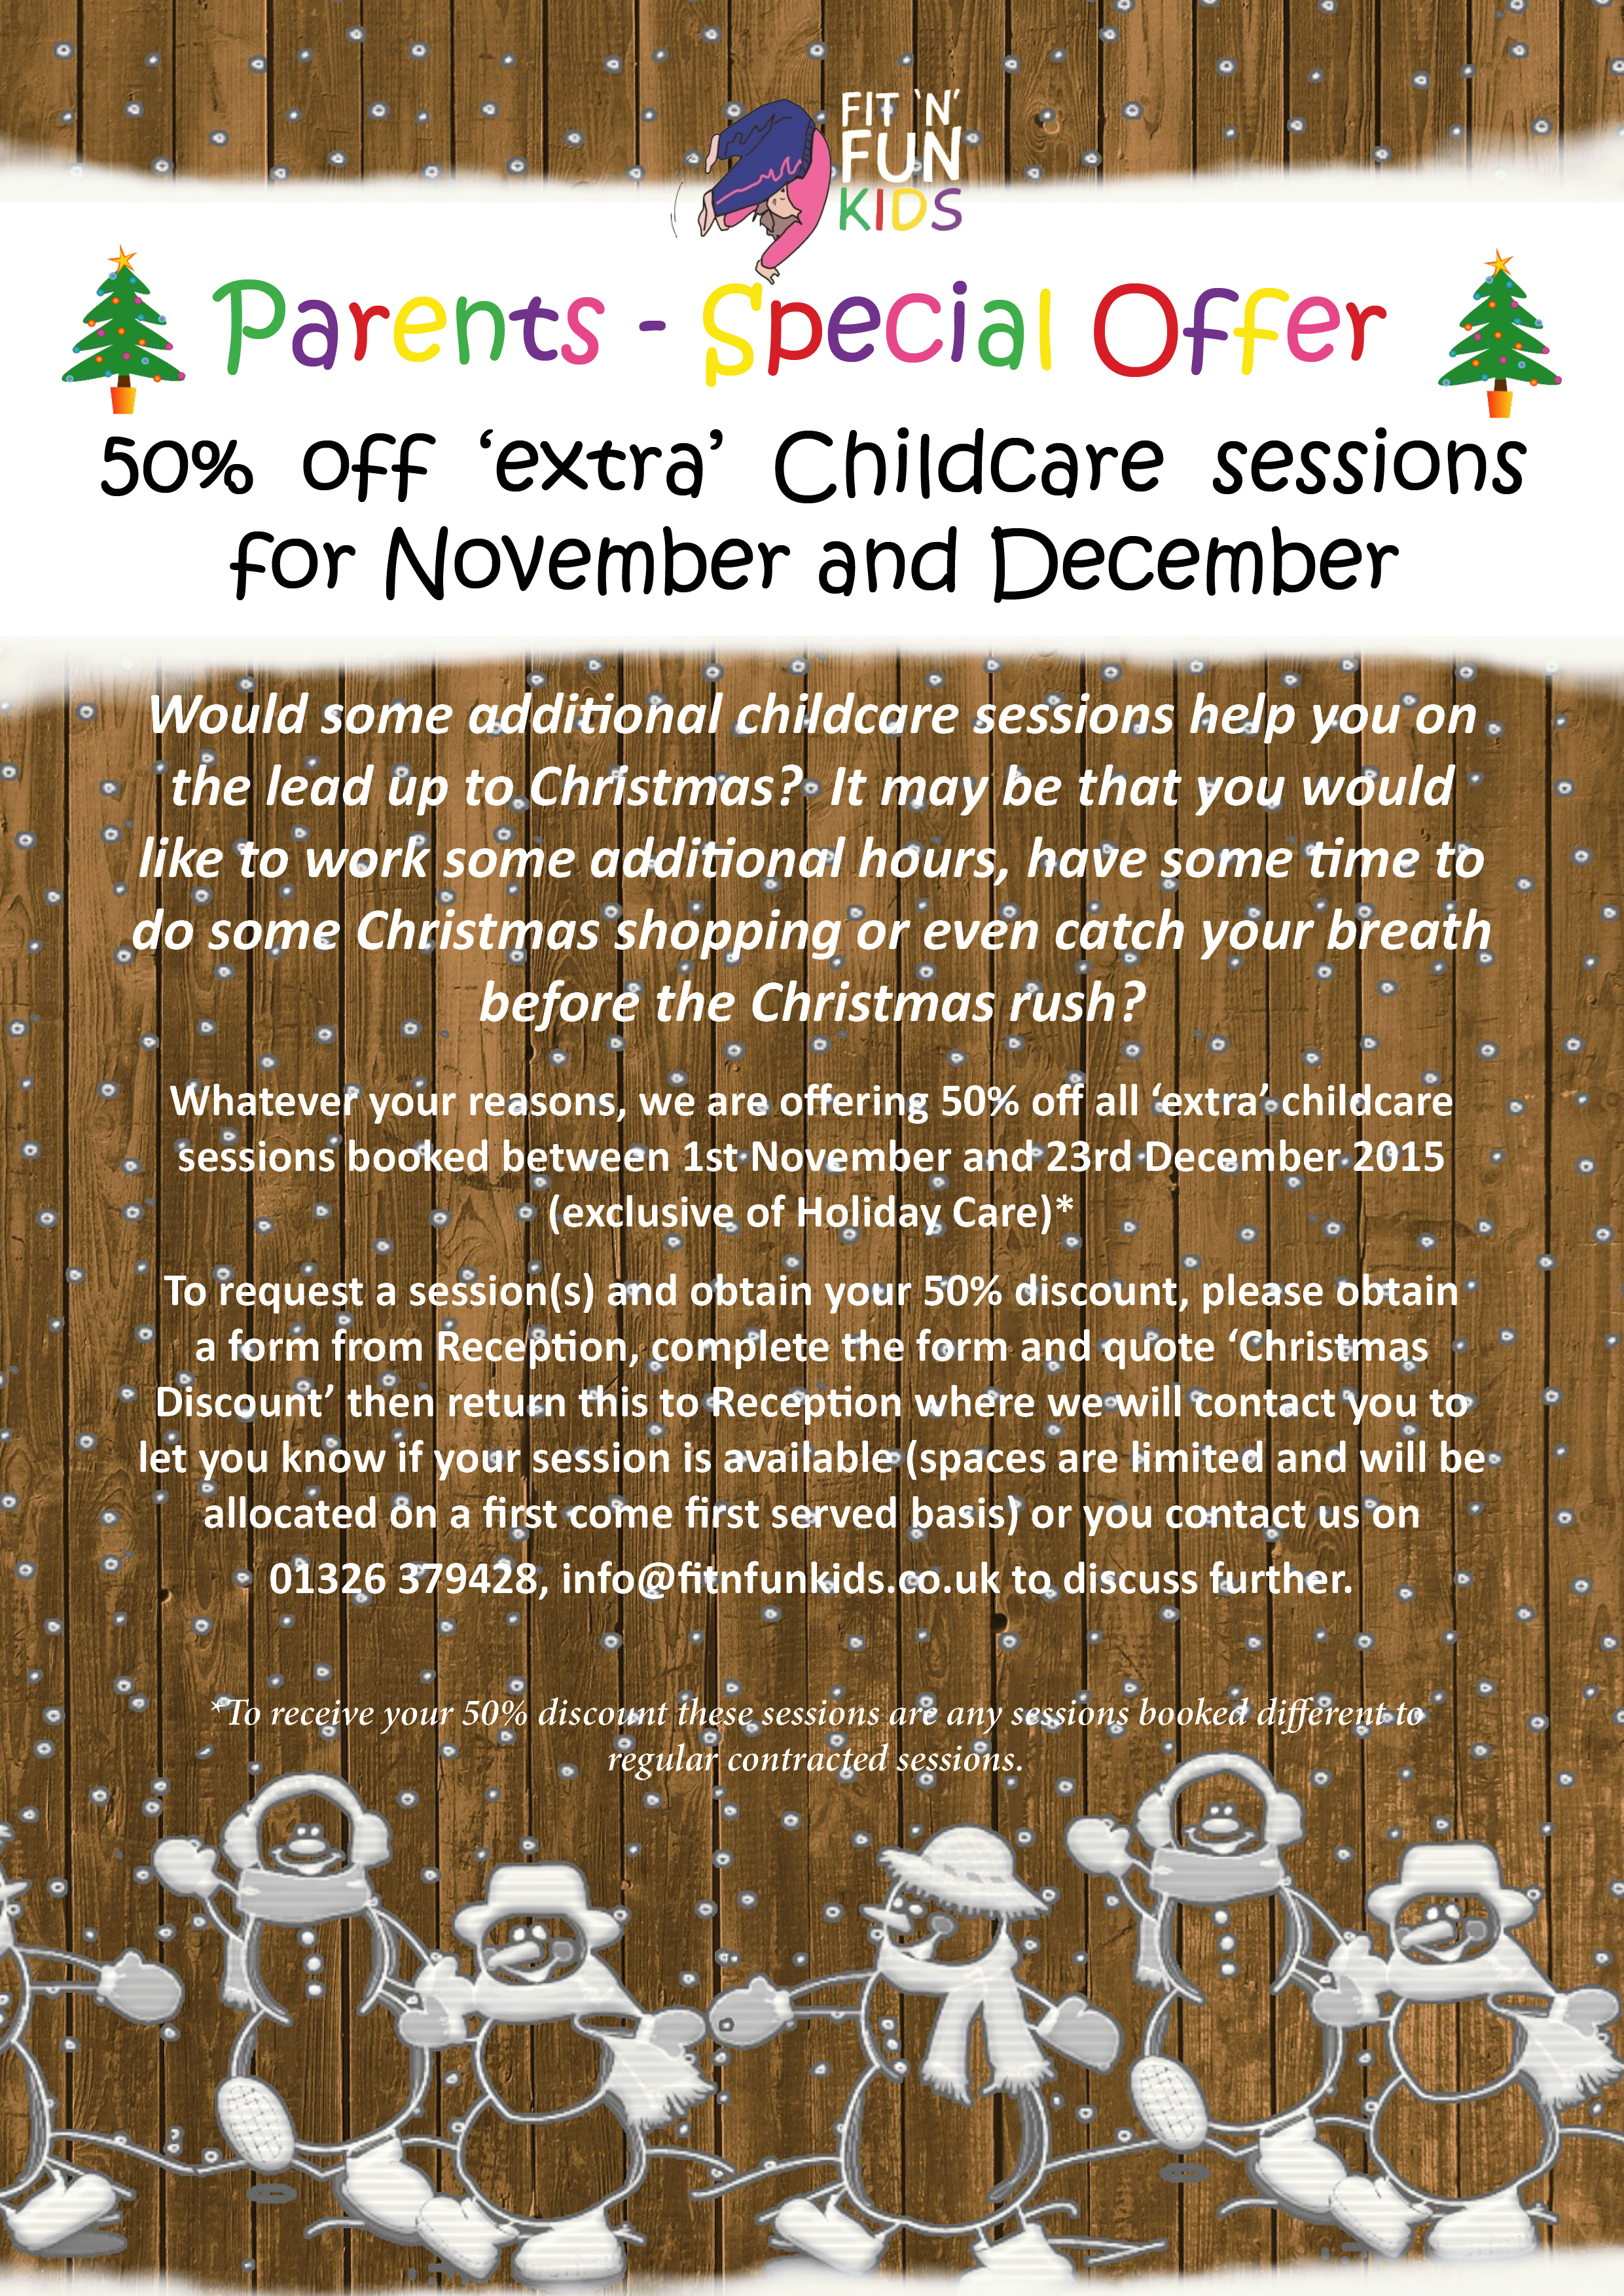 Christmas offer - 50% off childcare at Fit N Fun Kids